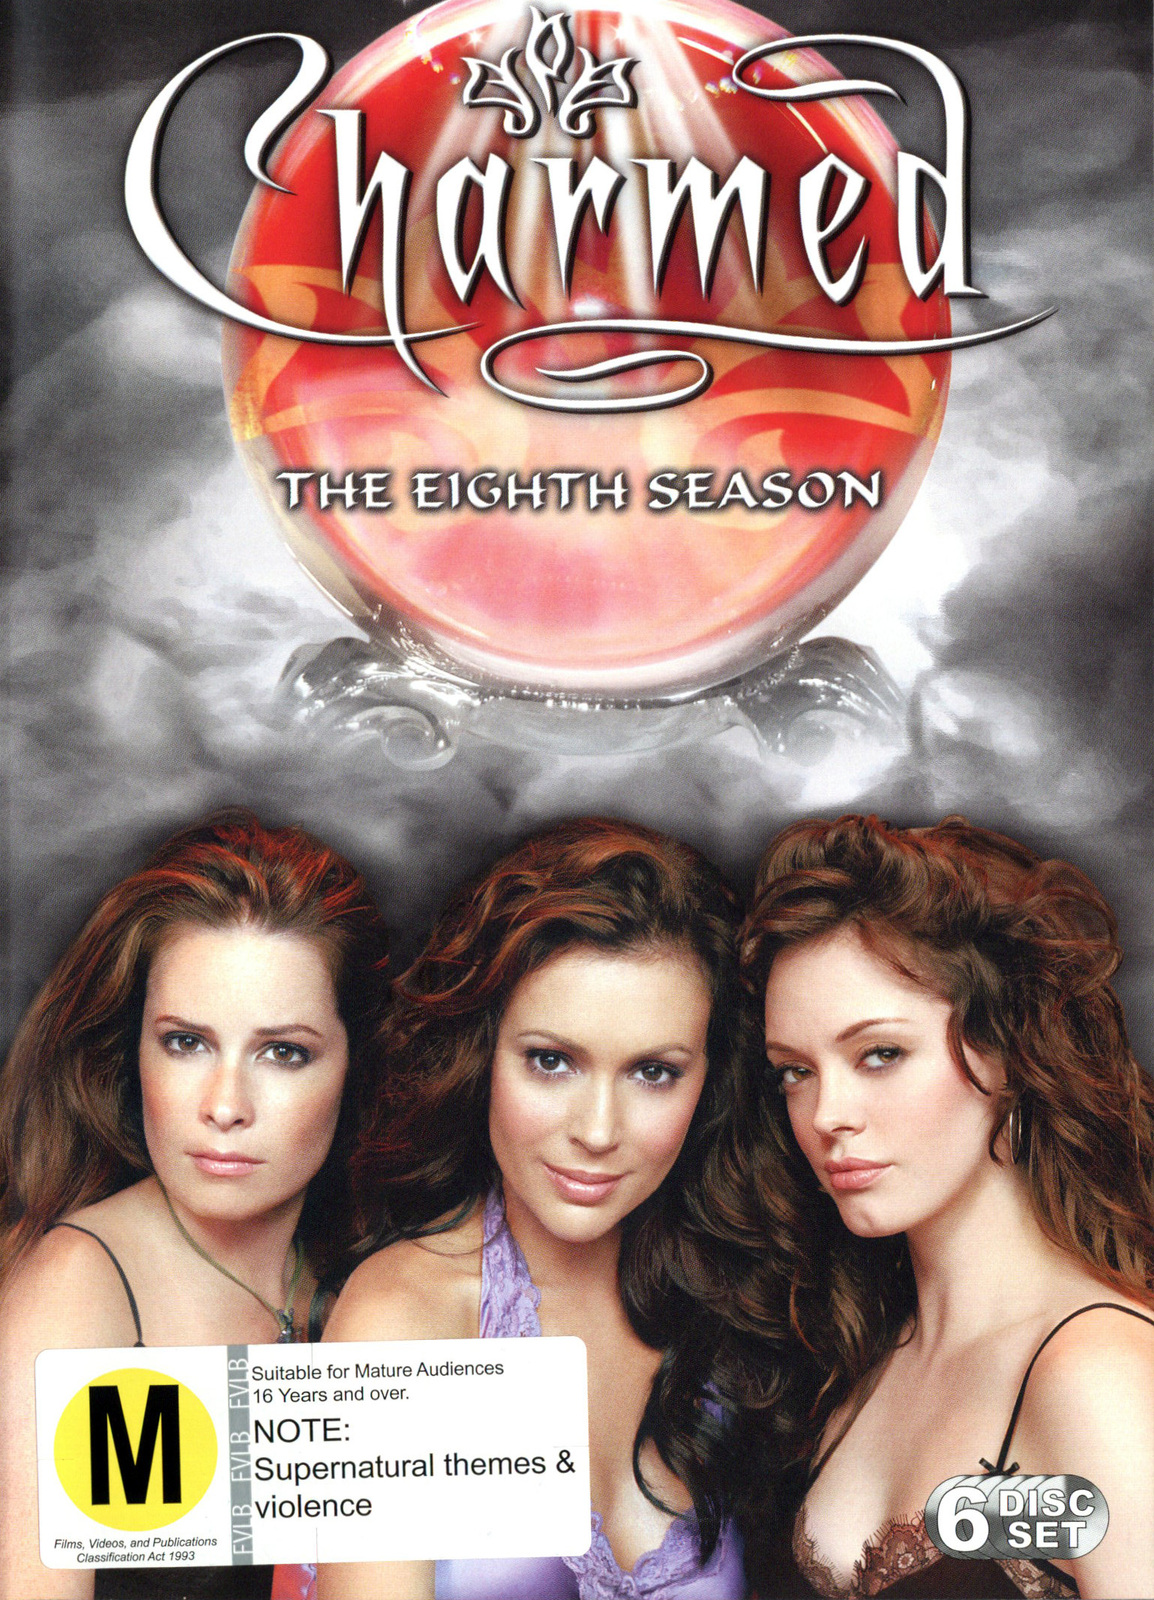 Charmed - Complete 8th Season (6 Disc Set) on DVD image